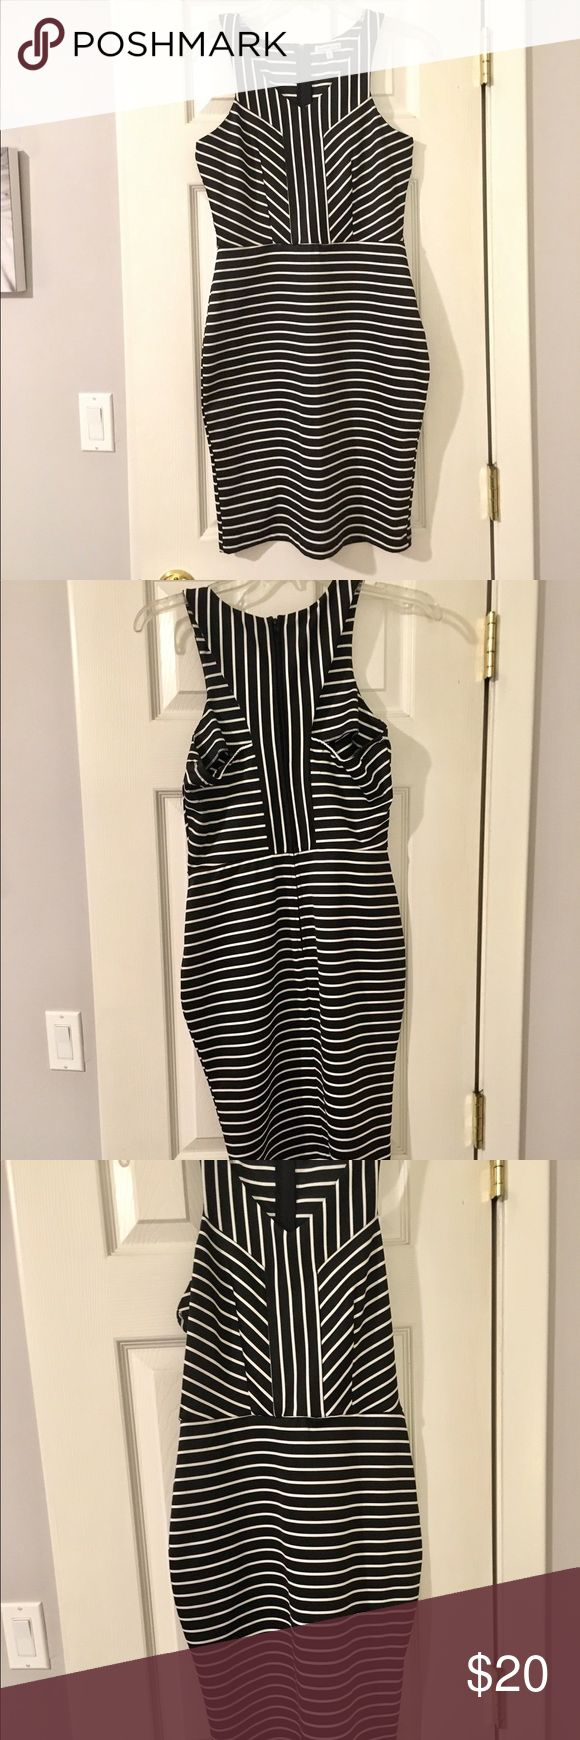 NWOT Charlotte Russe Black/White Striped Dress Here's your next date night look, your next girls   night out style, and your all dressed up just because dress. Stripes never go out of style and this black and white number is a knockout. Fitted style hugs your curves in all the right places and unique racerback style is sure to turn heads. Best of all its never been worn! What a deal! Charlotte Russe Dresses Mini